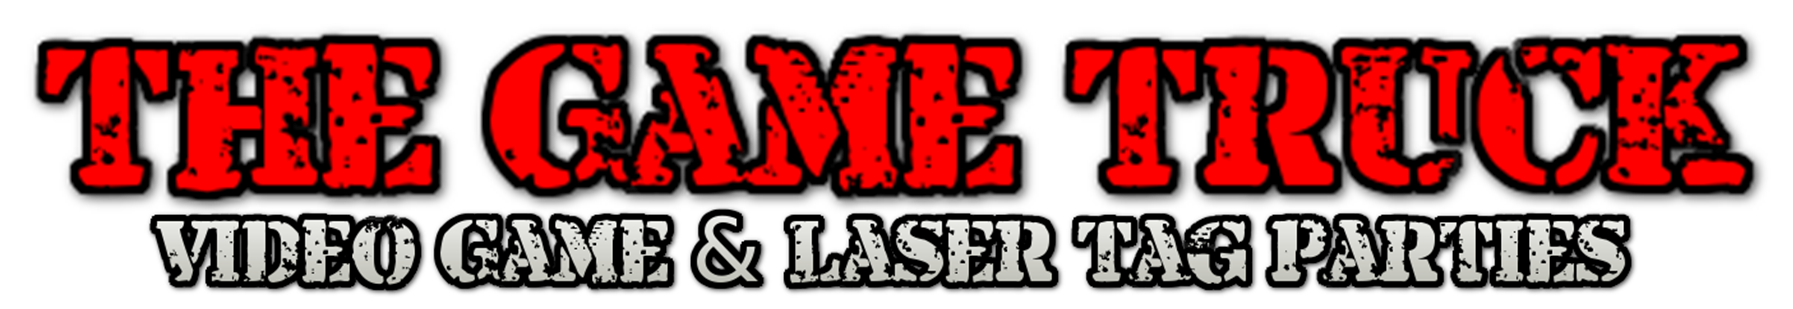 Video Game And Laser Tag Party In Mississippi And Alabama